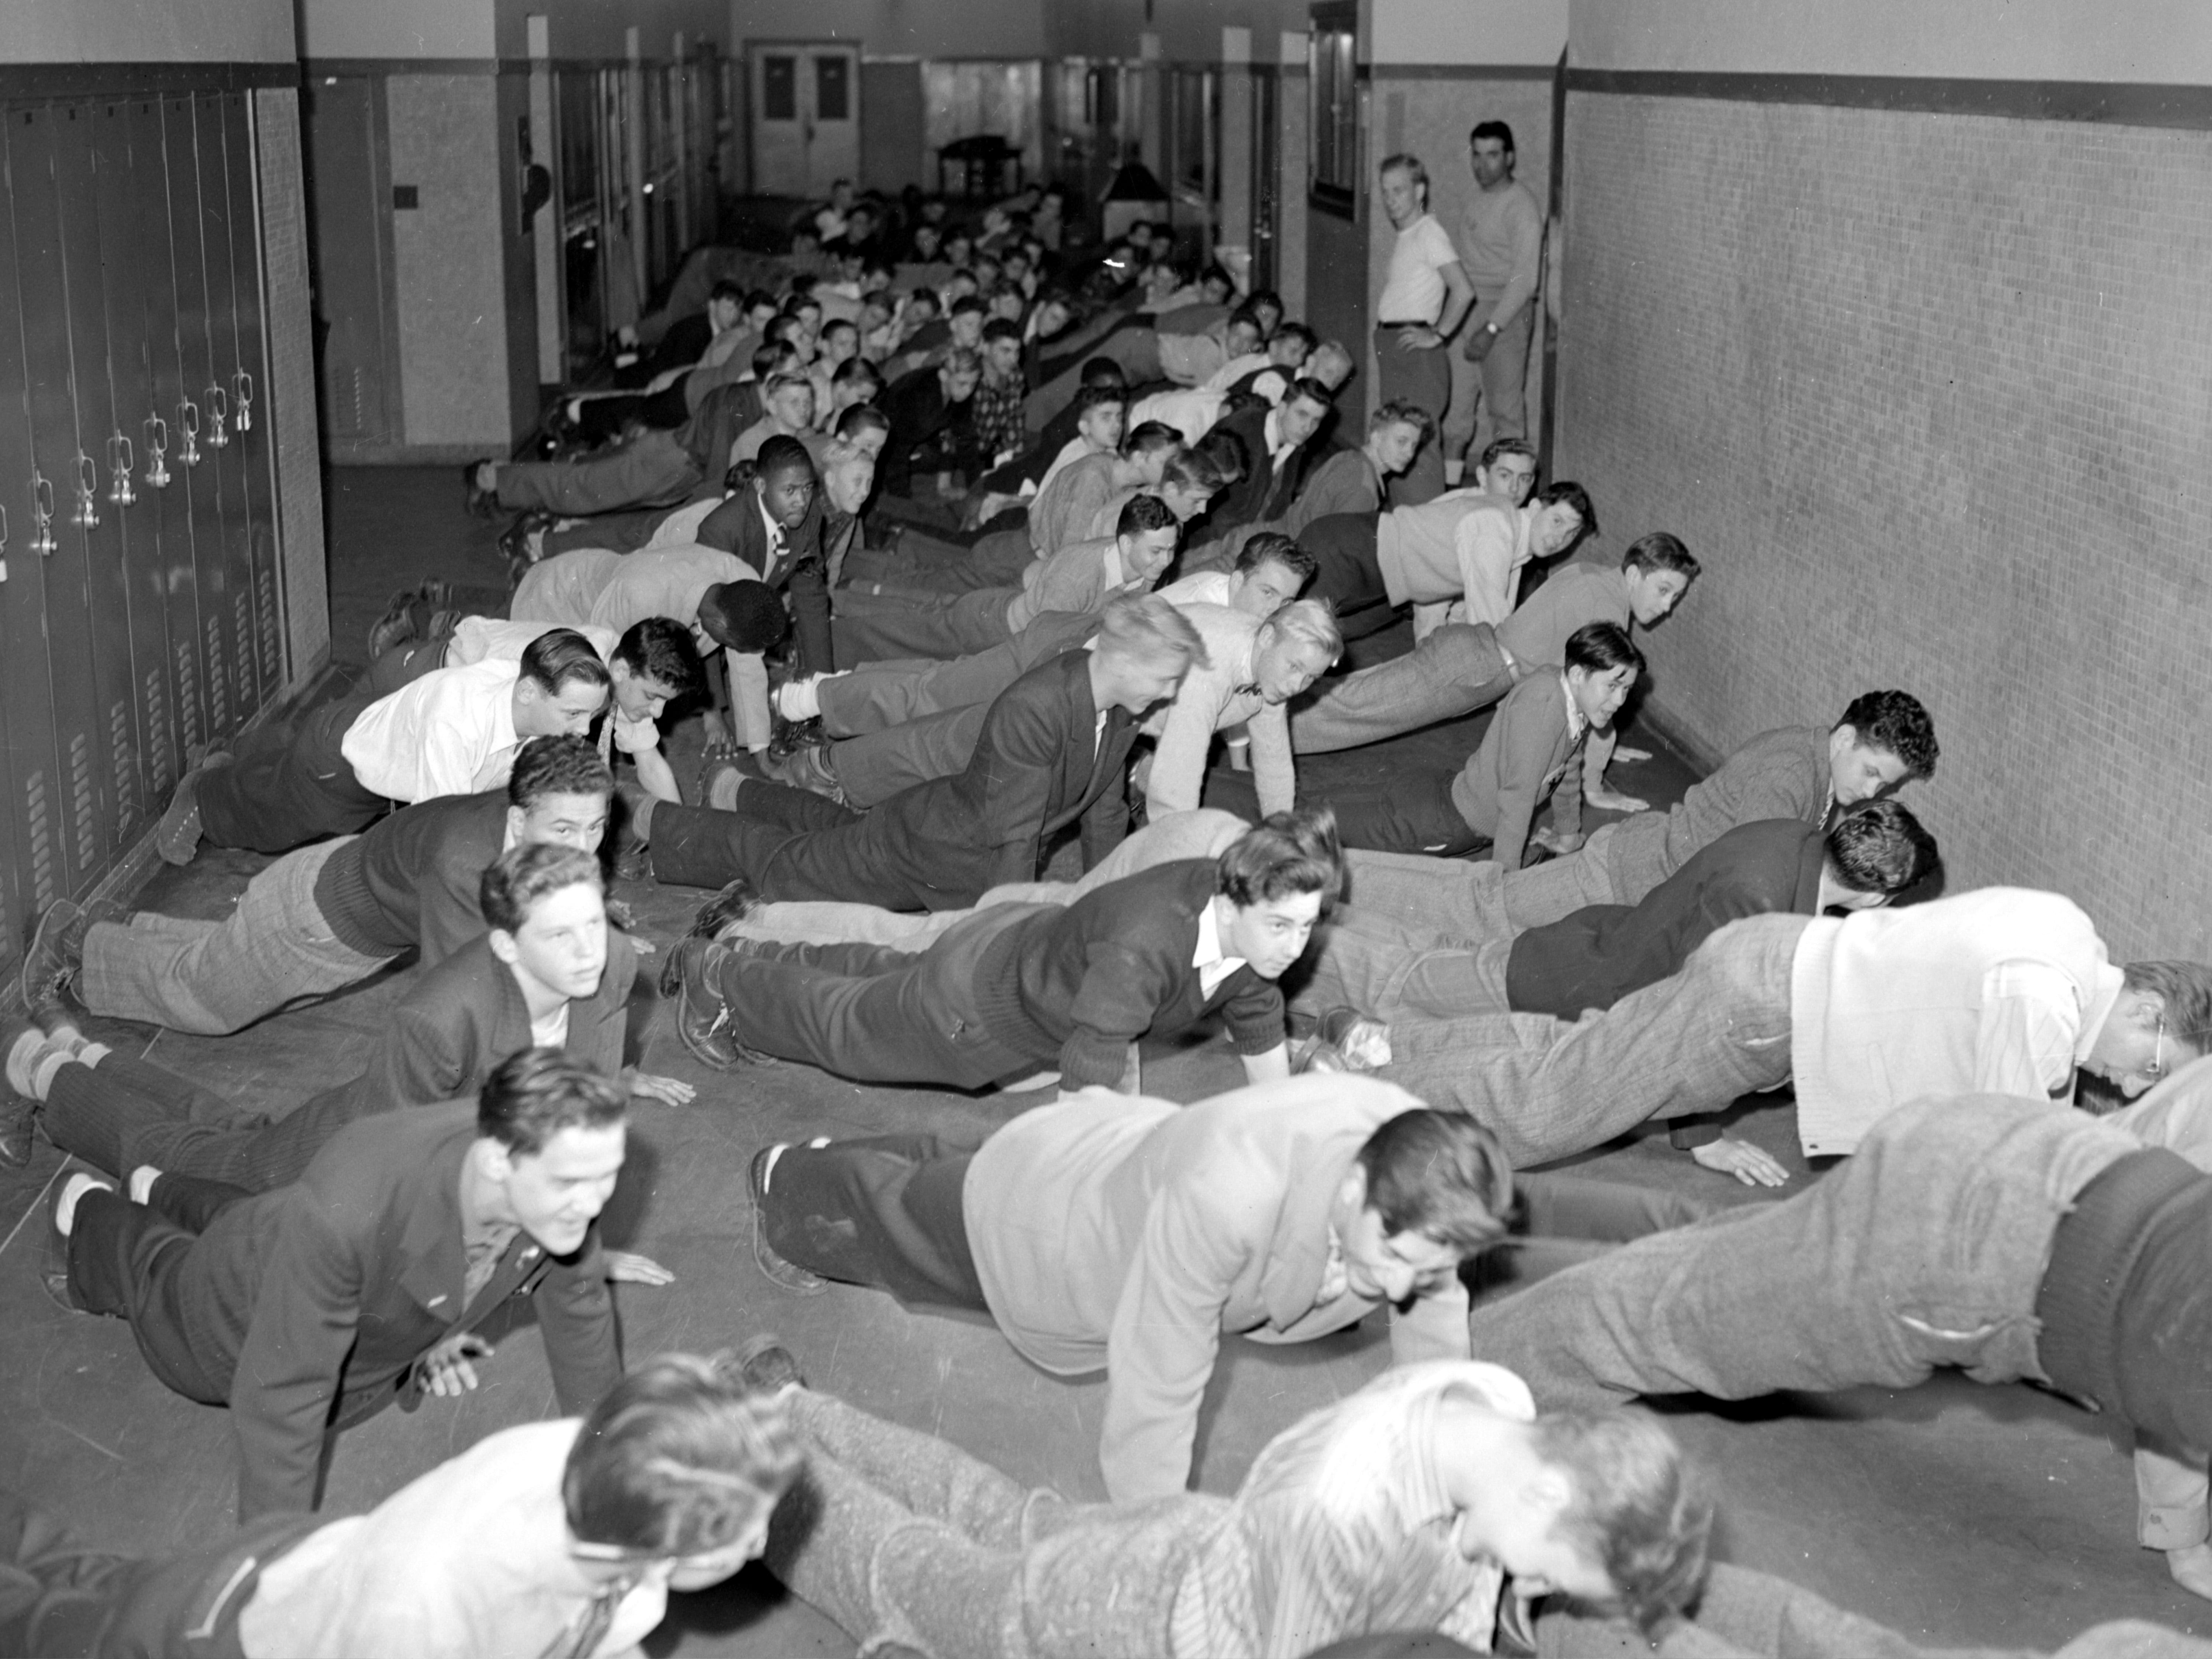 Classroom overcrowding was a big problem in Detroit in 1944. The boys at Pershing High exercise in the school hallways, since there was no gymnasium. The high school had a capacity of 1,666, but an enrollment of nearly 3,800.